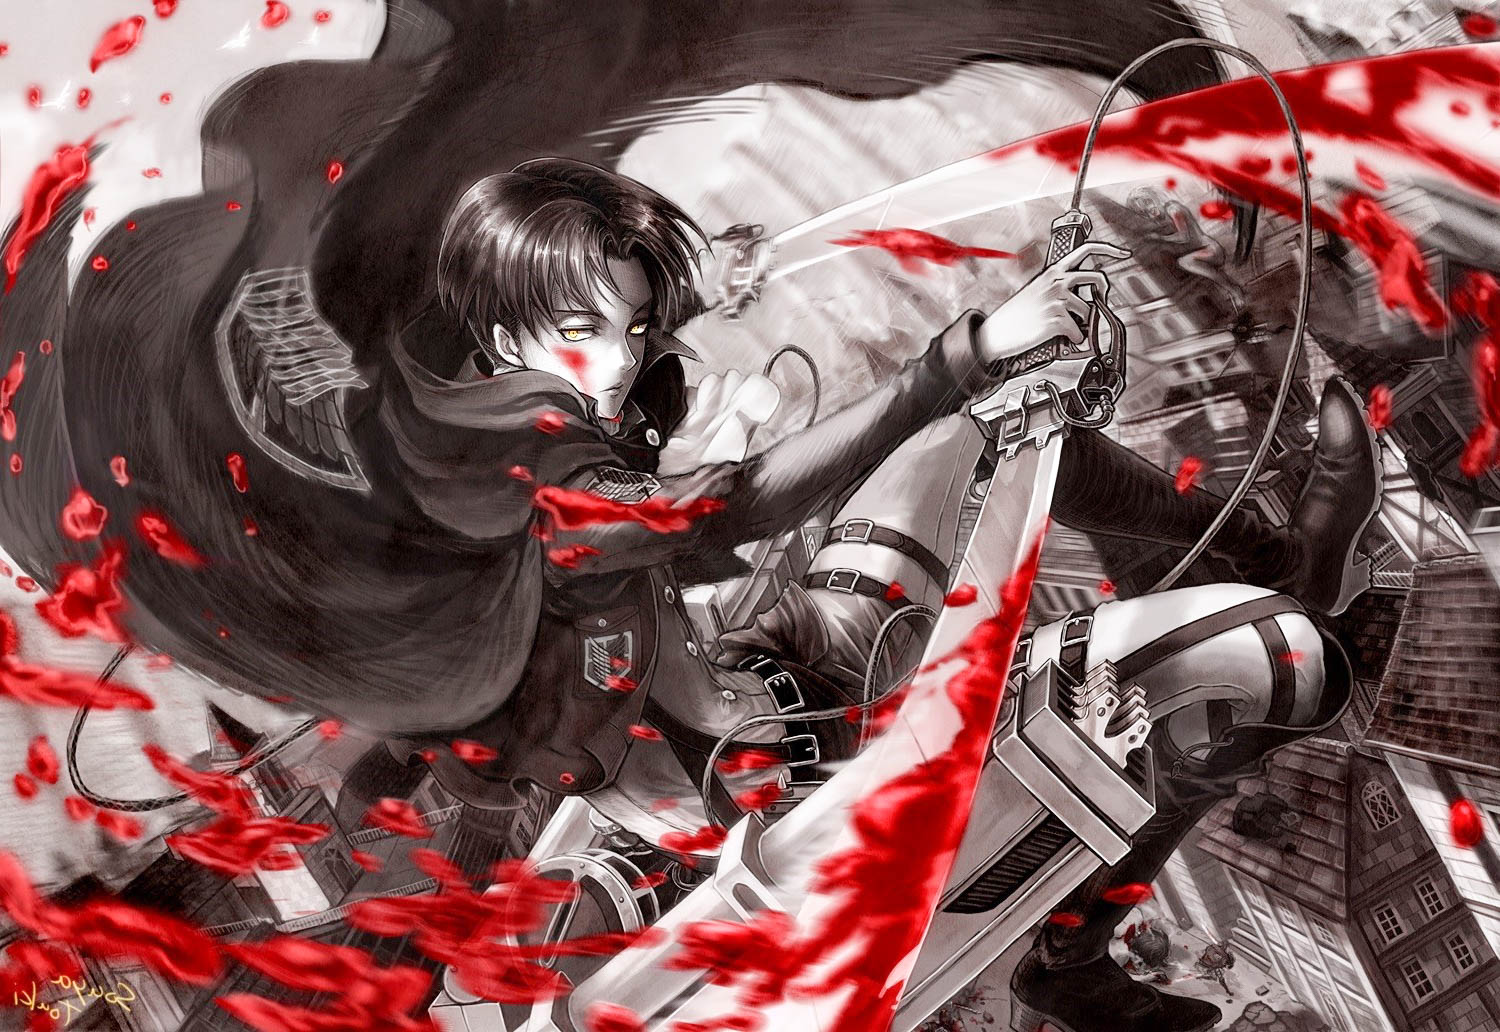 Attack on titan wallpaper in high quality all hd wallpapers attack on titan 6 voltagebd Choice Image